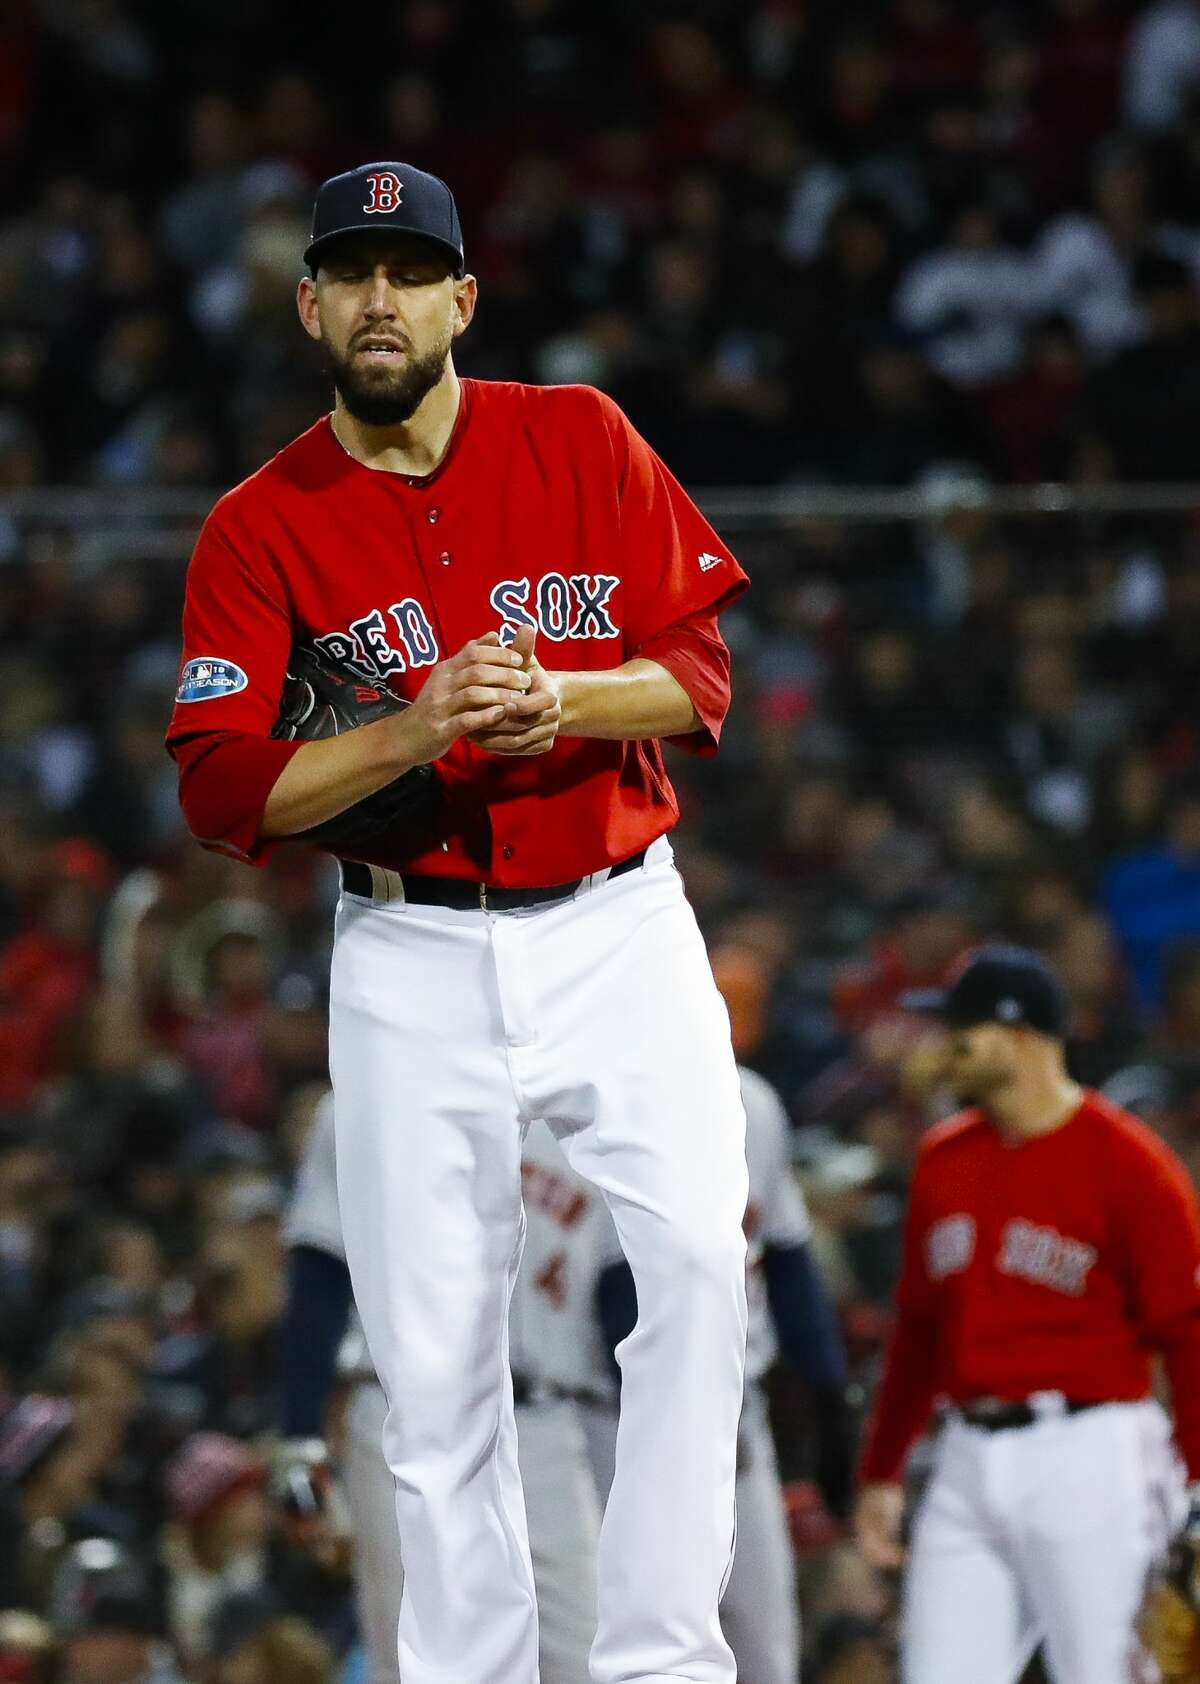 Boston Red Sox pitcher Matt Barnes pitches during the seventh inning of Game 1 of the American League Championship Series at Fenway Park on Saturday, Oct. 13, 2018, in Boston.